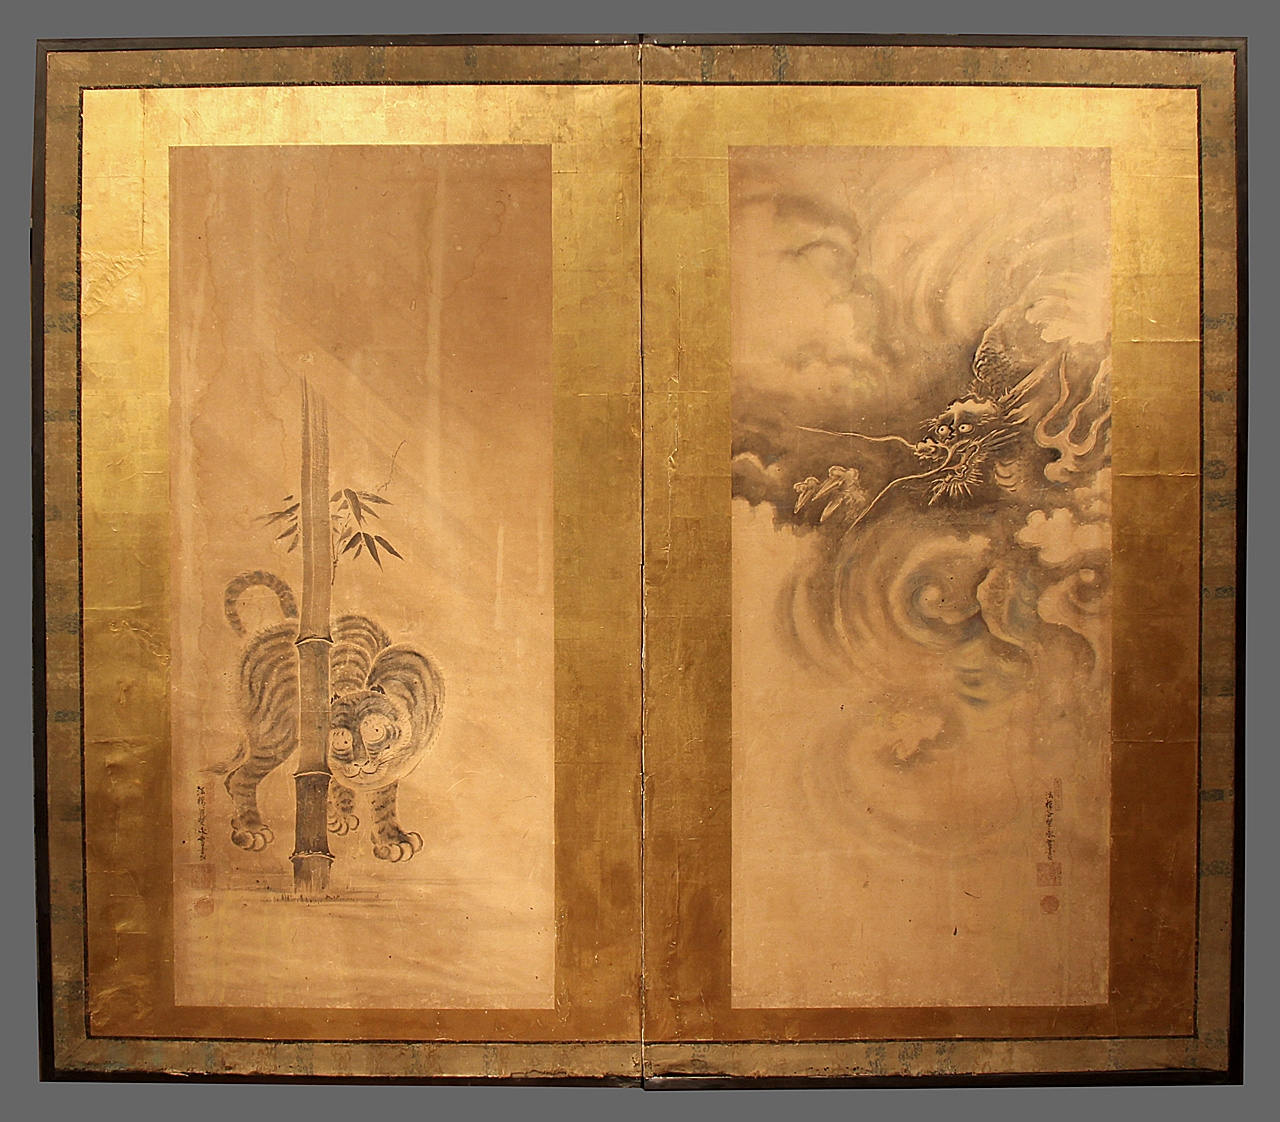 Edo period tiger and dragon screen - two panel - We have between 50-100 screens in stock - please contact the gallery for more info